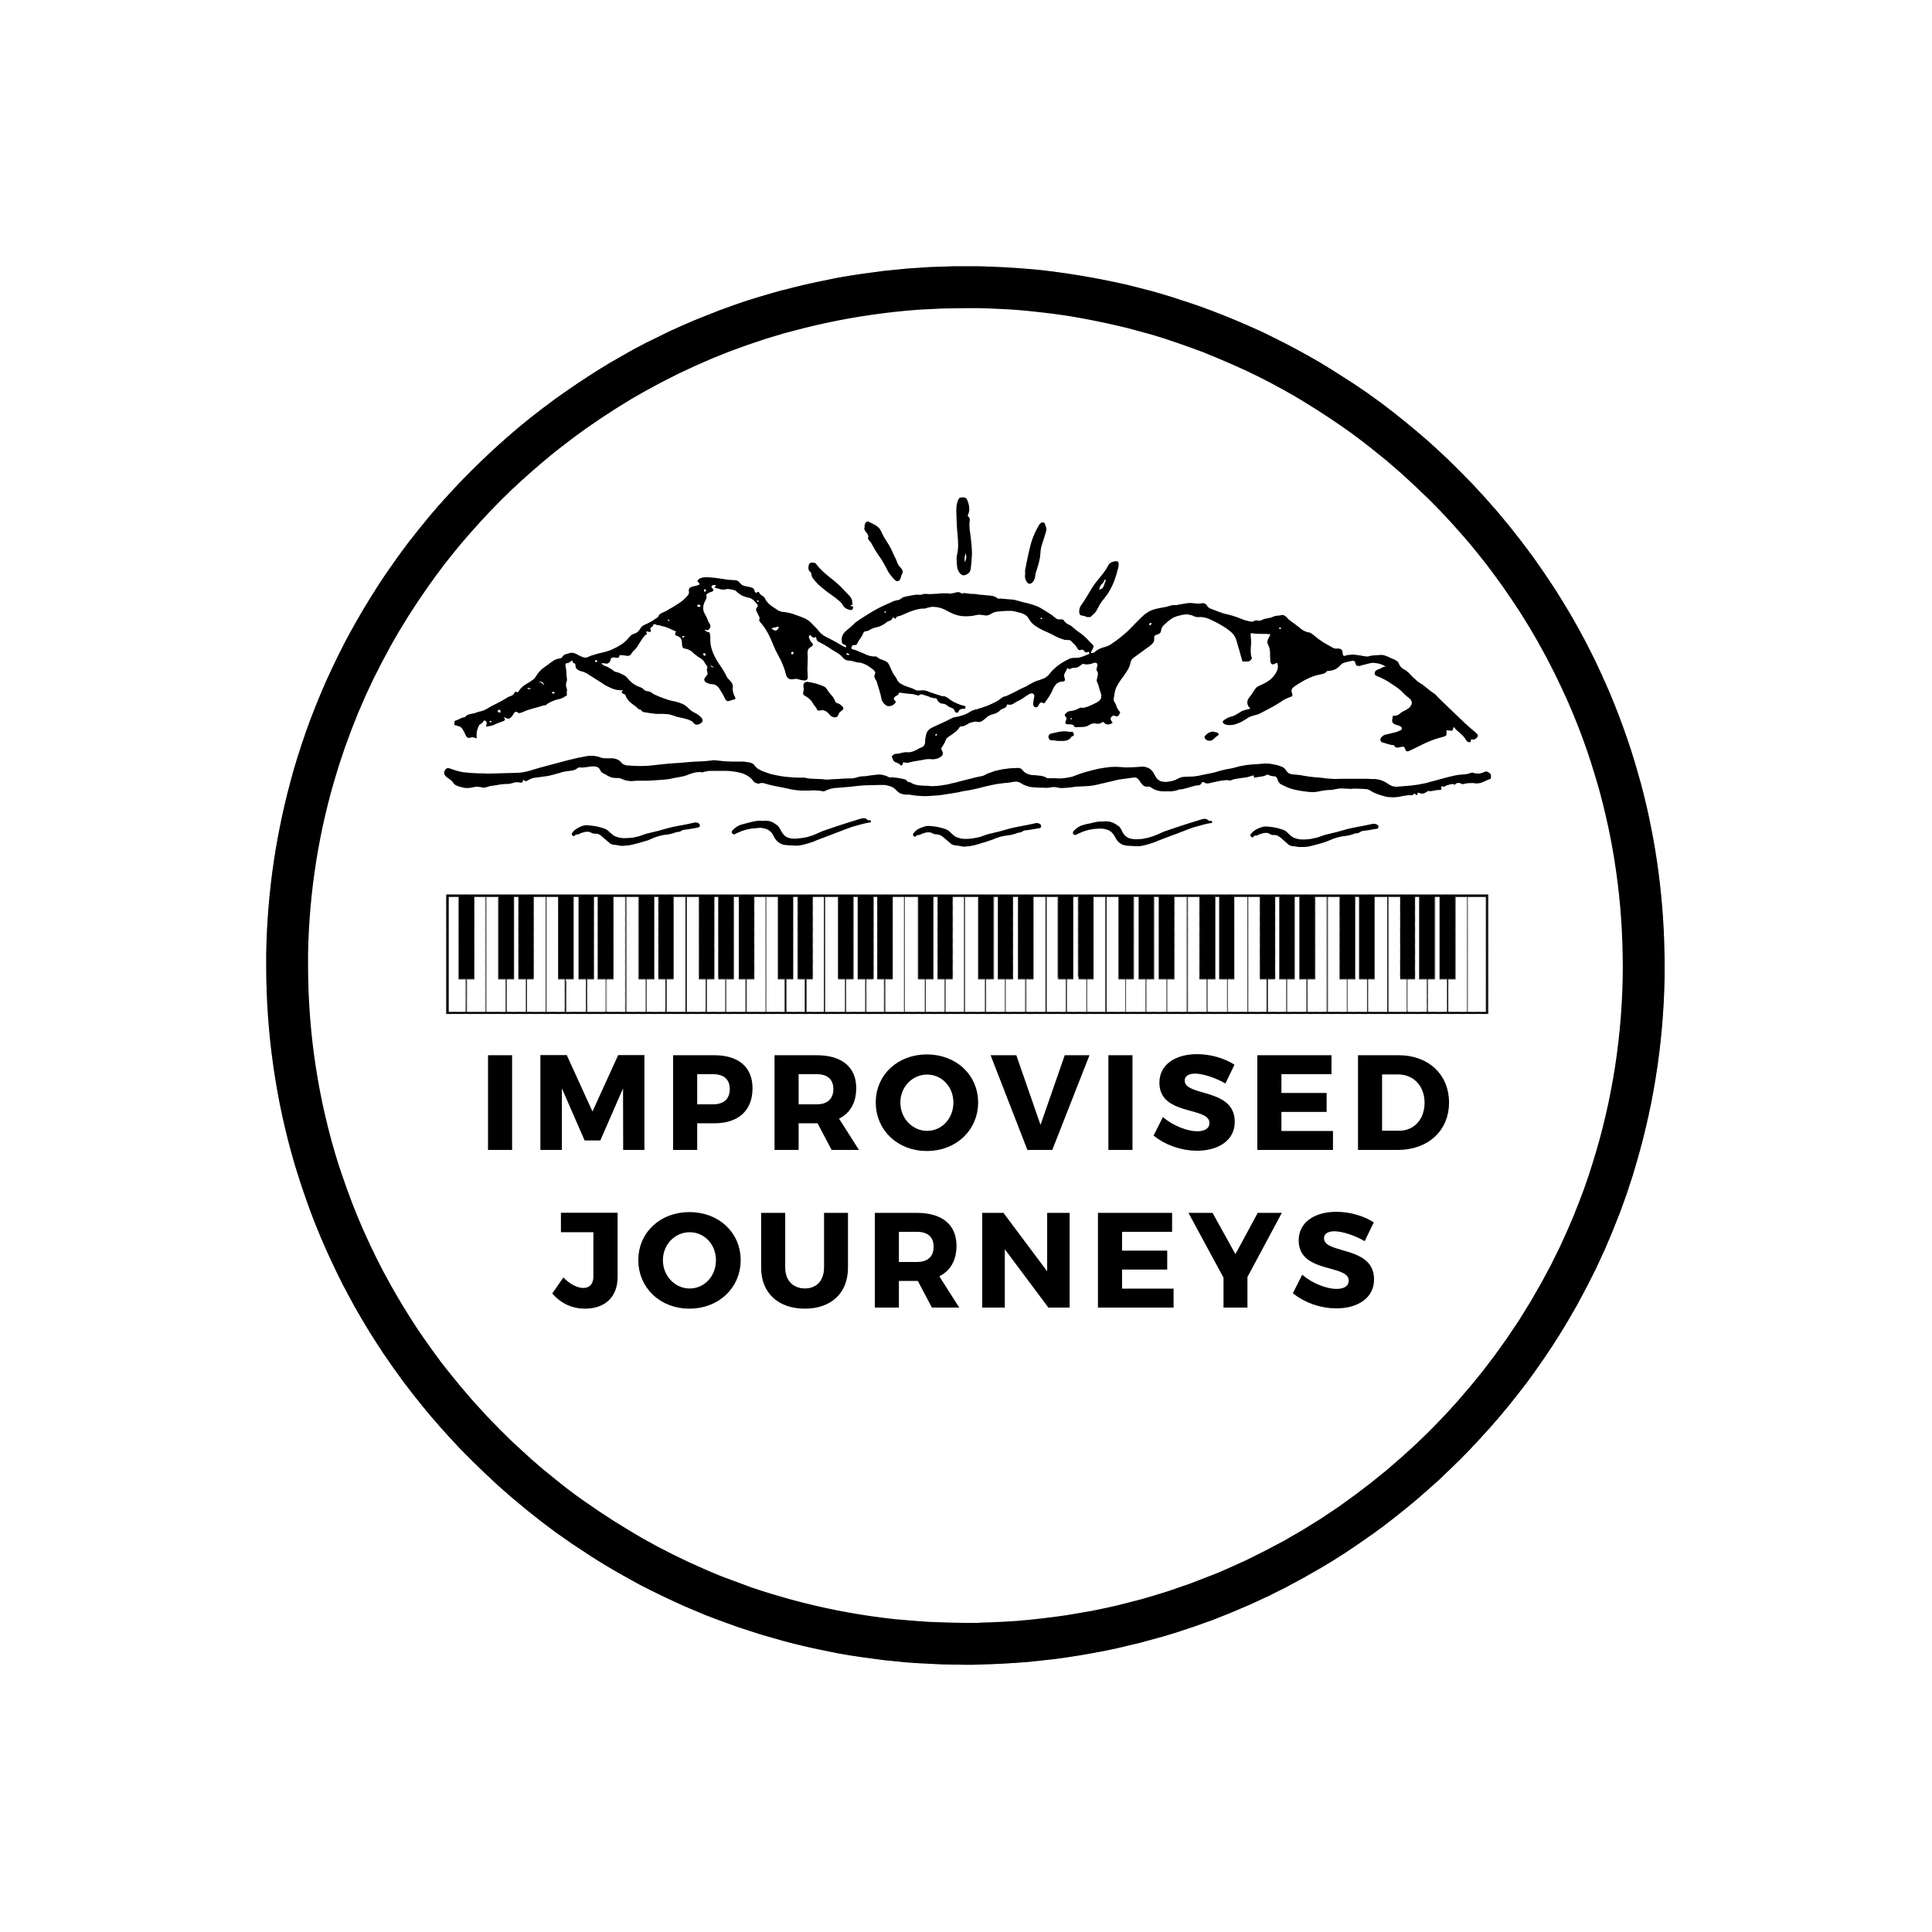 About Improvised Journeys